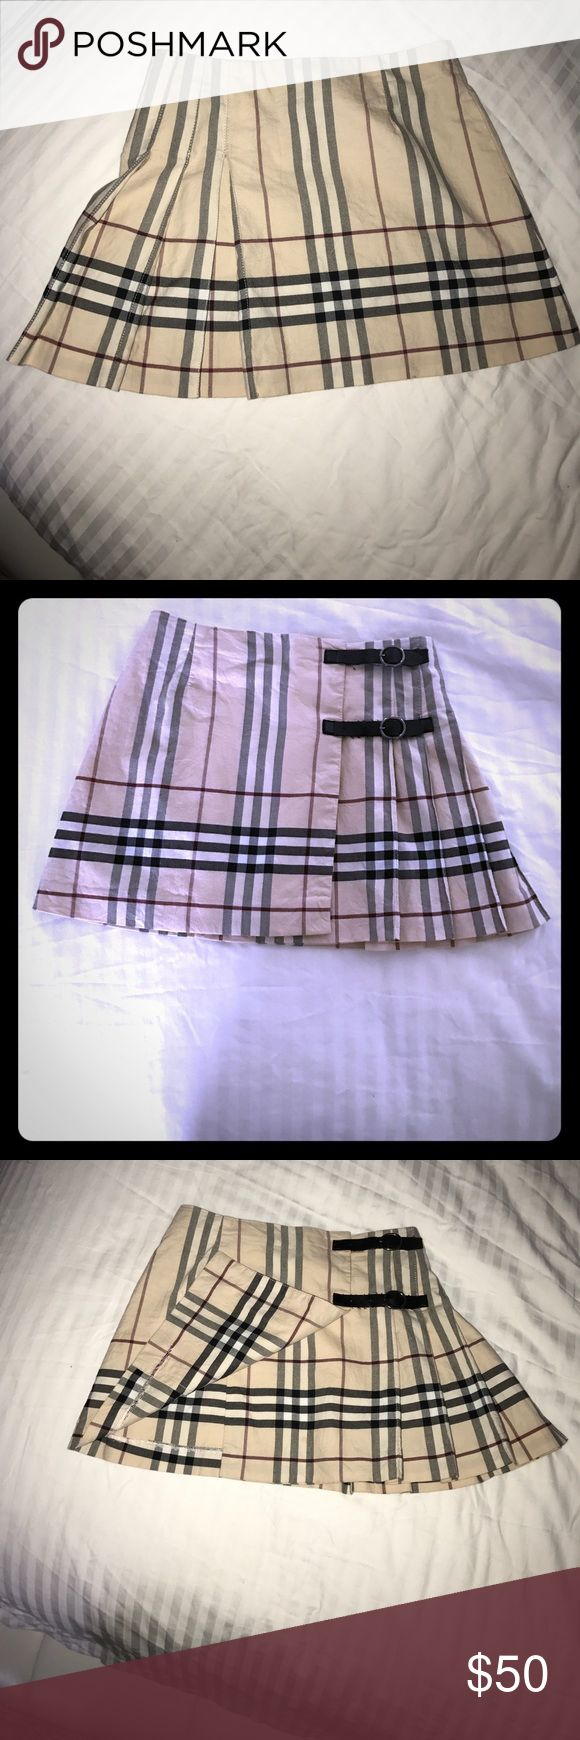 Burberry little girls skirt Little girls size 5 Burberry skirt in good condition no stains no rips. Burberry Skirts